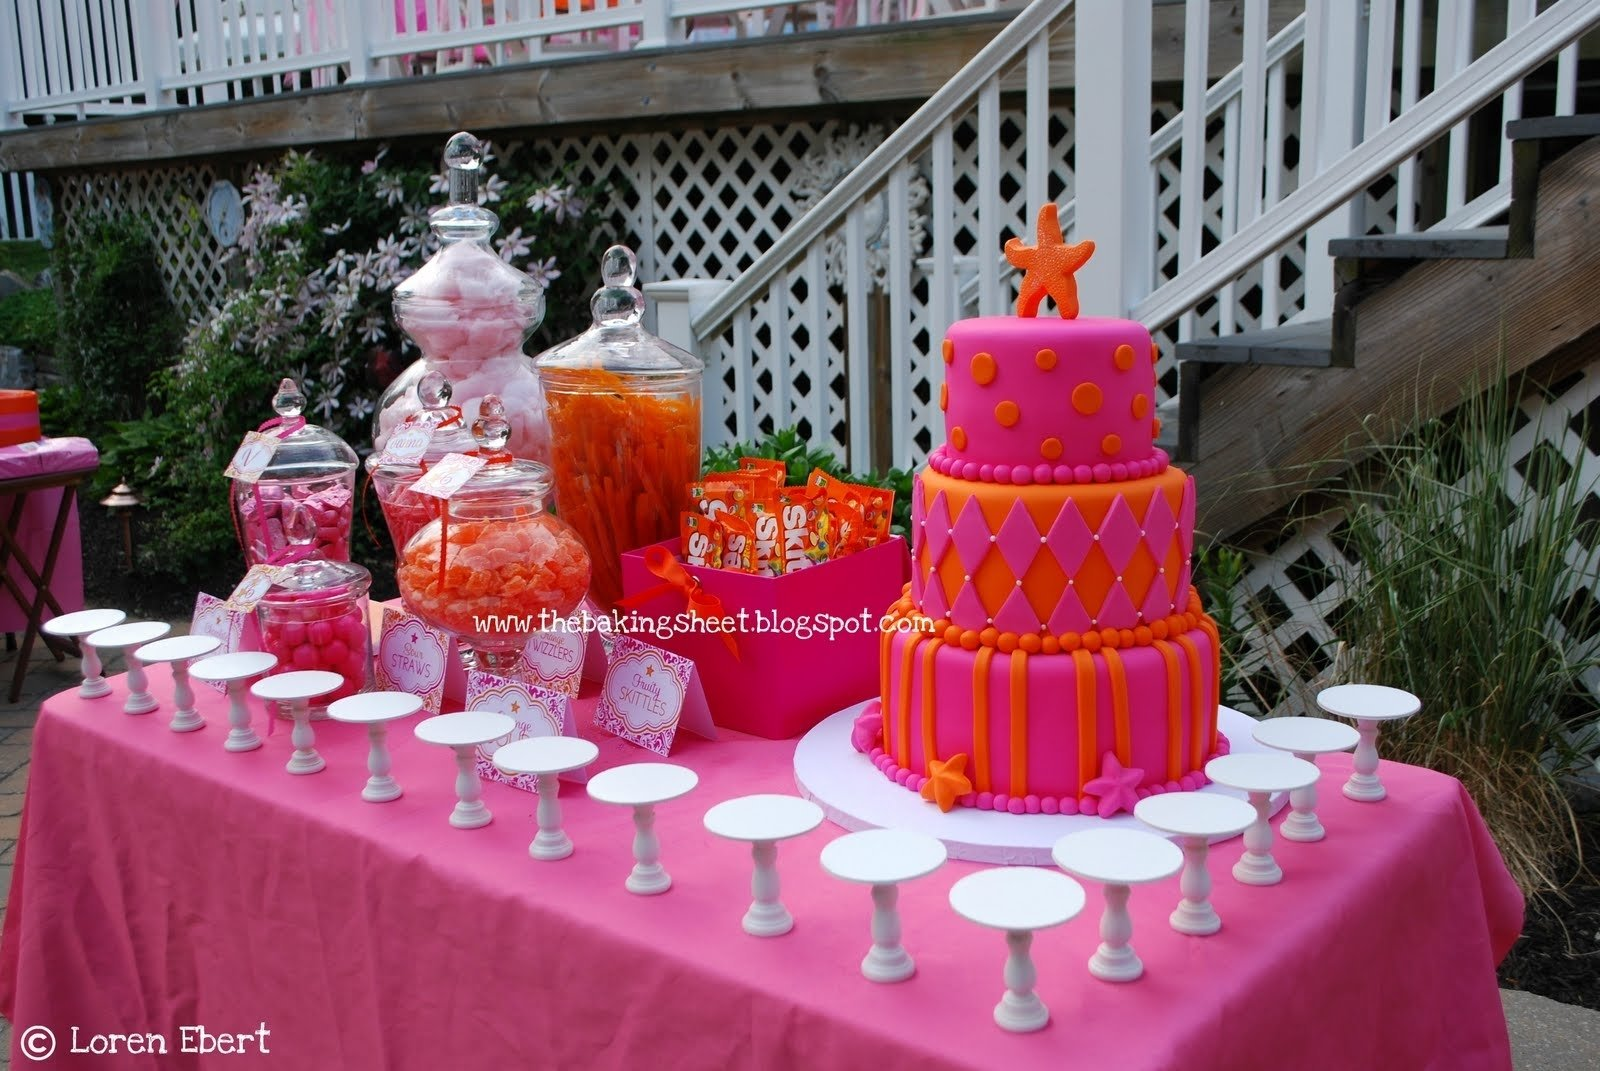 10 Fabulous 16Th Birthday Party Ideas For Girls 16th birthday party ideas for girls birthday party a awesome sweet 1 2020